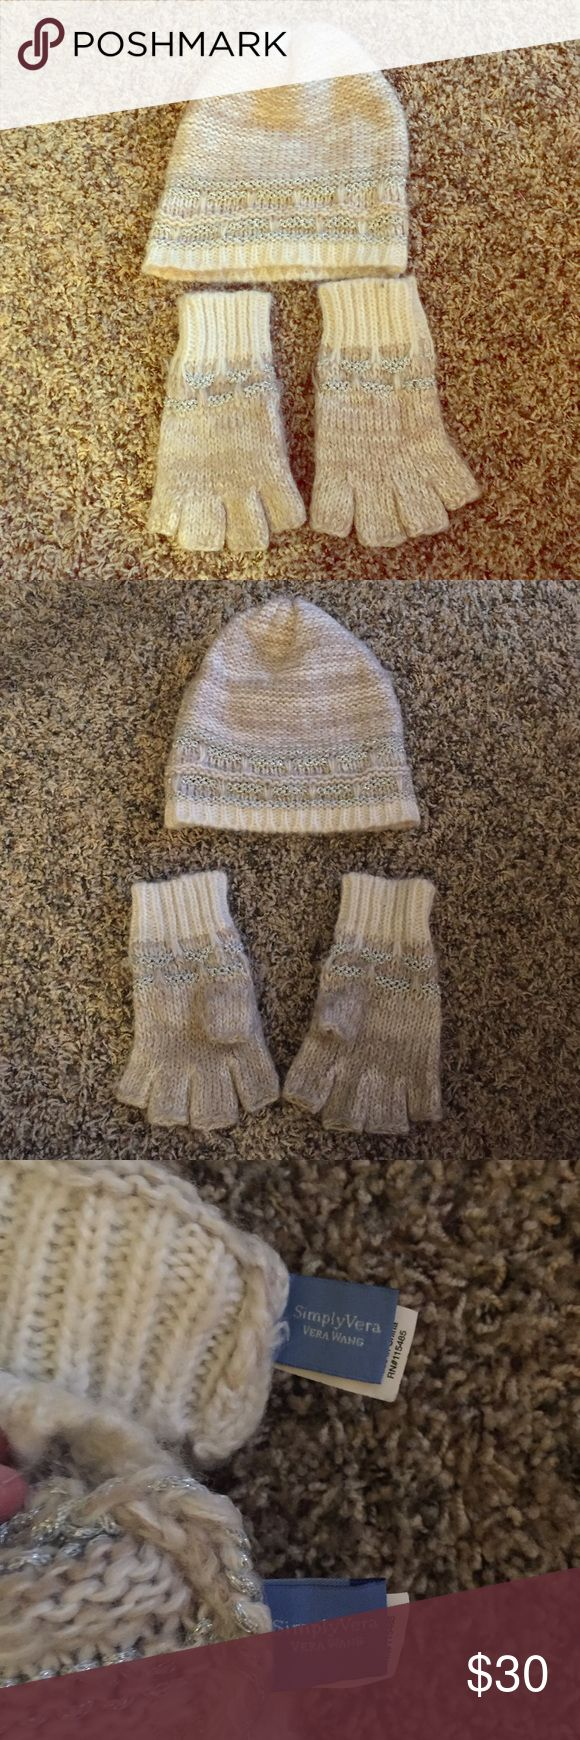 ❄️DAY SALE! Simply Vera Wang Hat & Gloves Simply Vera - Vera Wang Matching Beanie Hat and Gloves. Cream color design with some silver stitching. Gloves are made without finger tips. Some minor pilling on gloves Simply Vera Vera Wang Accessories Gloves & Mittens